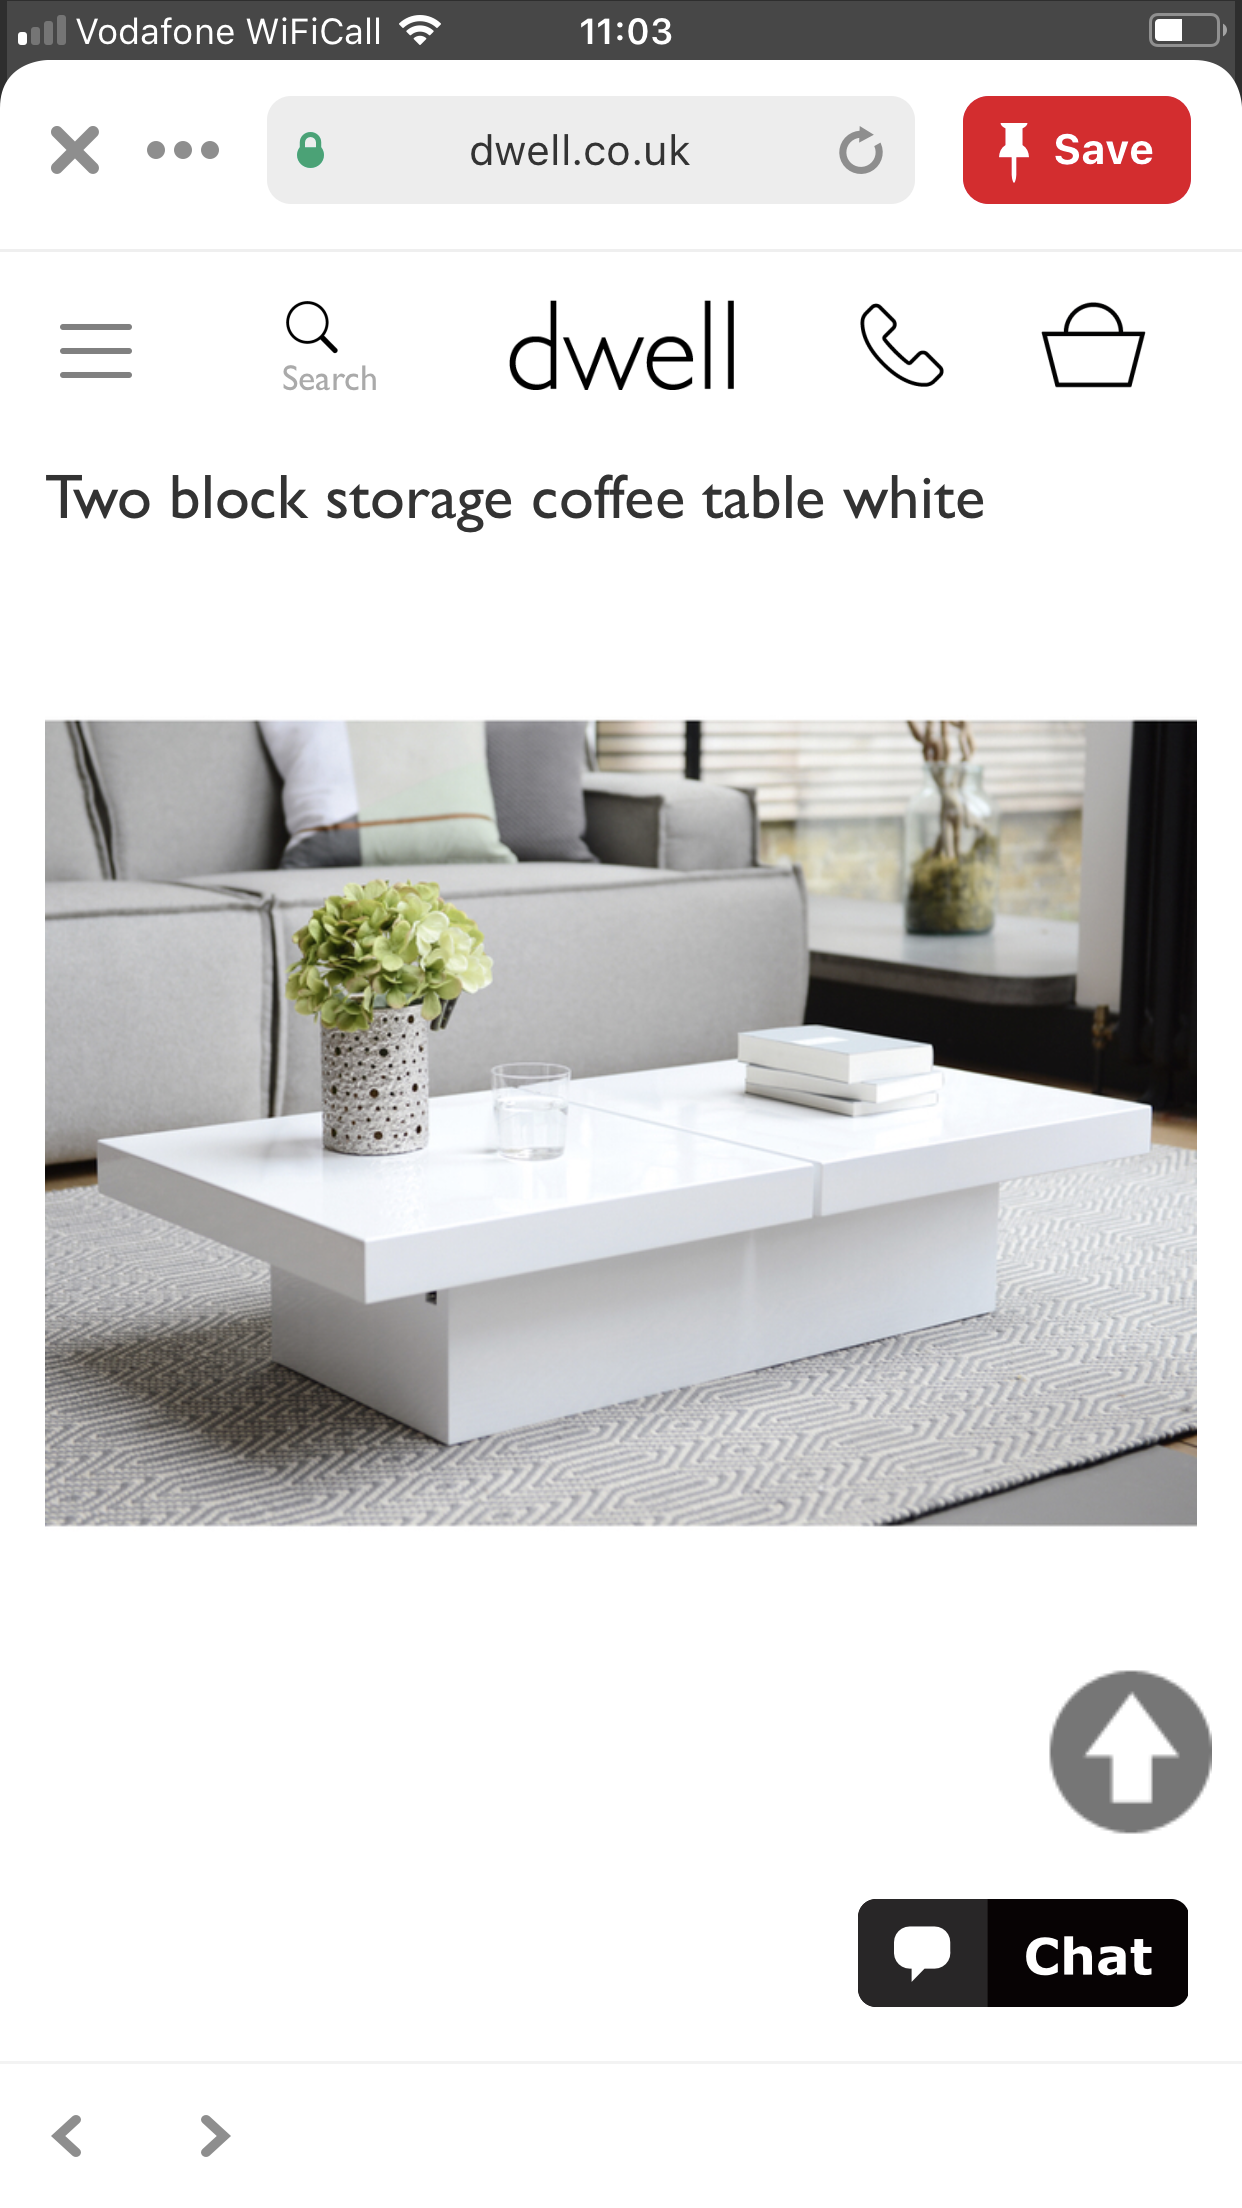 Pin By Leah Marlow On White Kitchen Coffee Table White Coffee Table Coffee Table With Storage [ 2208 x 1242 Pixel ]